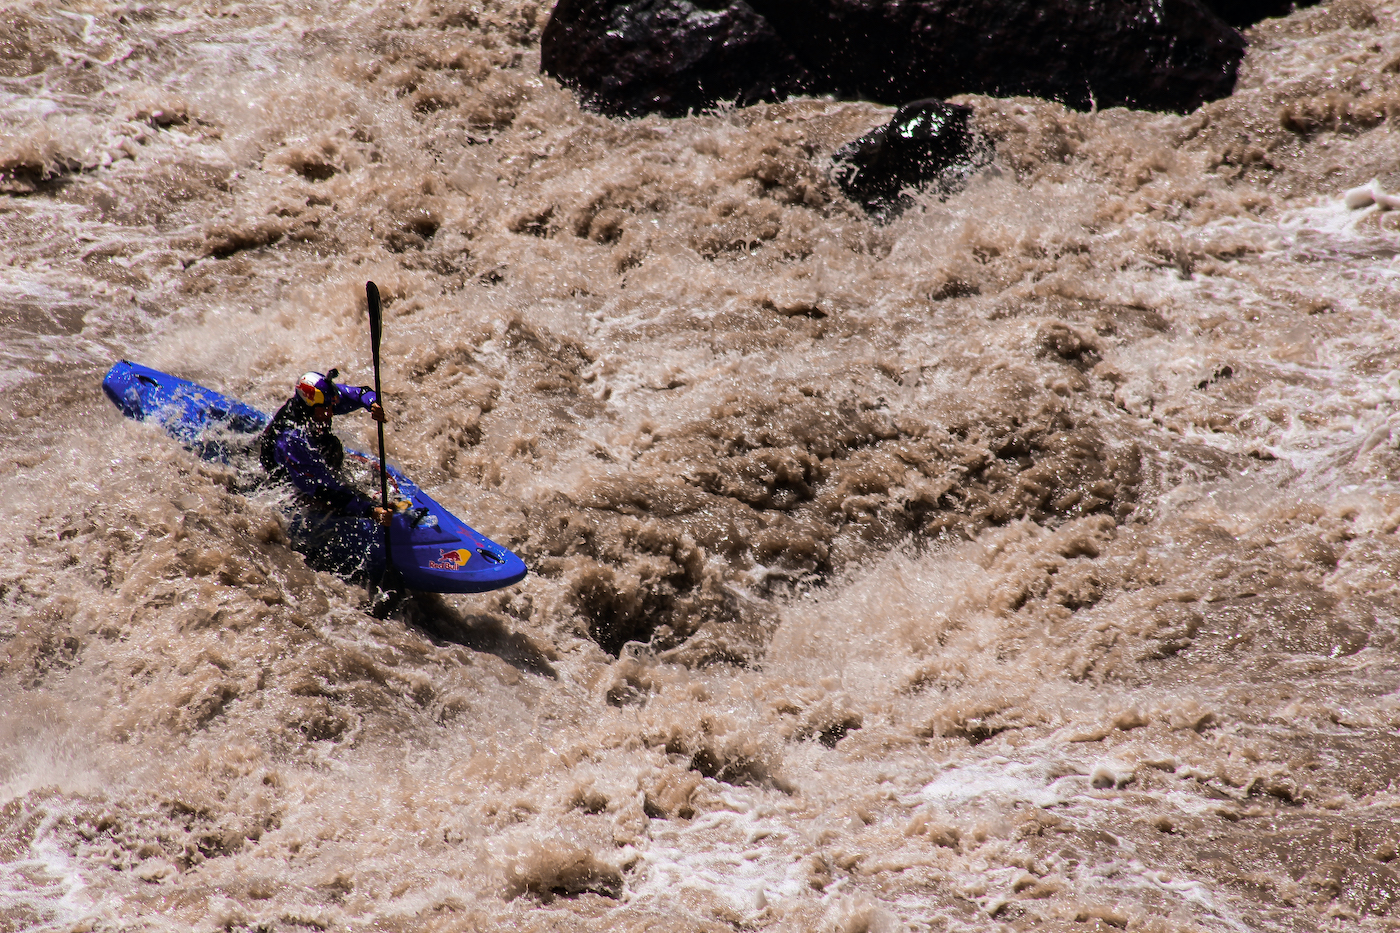 Aniol Serrasolses kayaking on the Maipo River. Photo: Paulo Urrutia Barceló